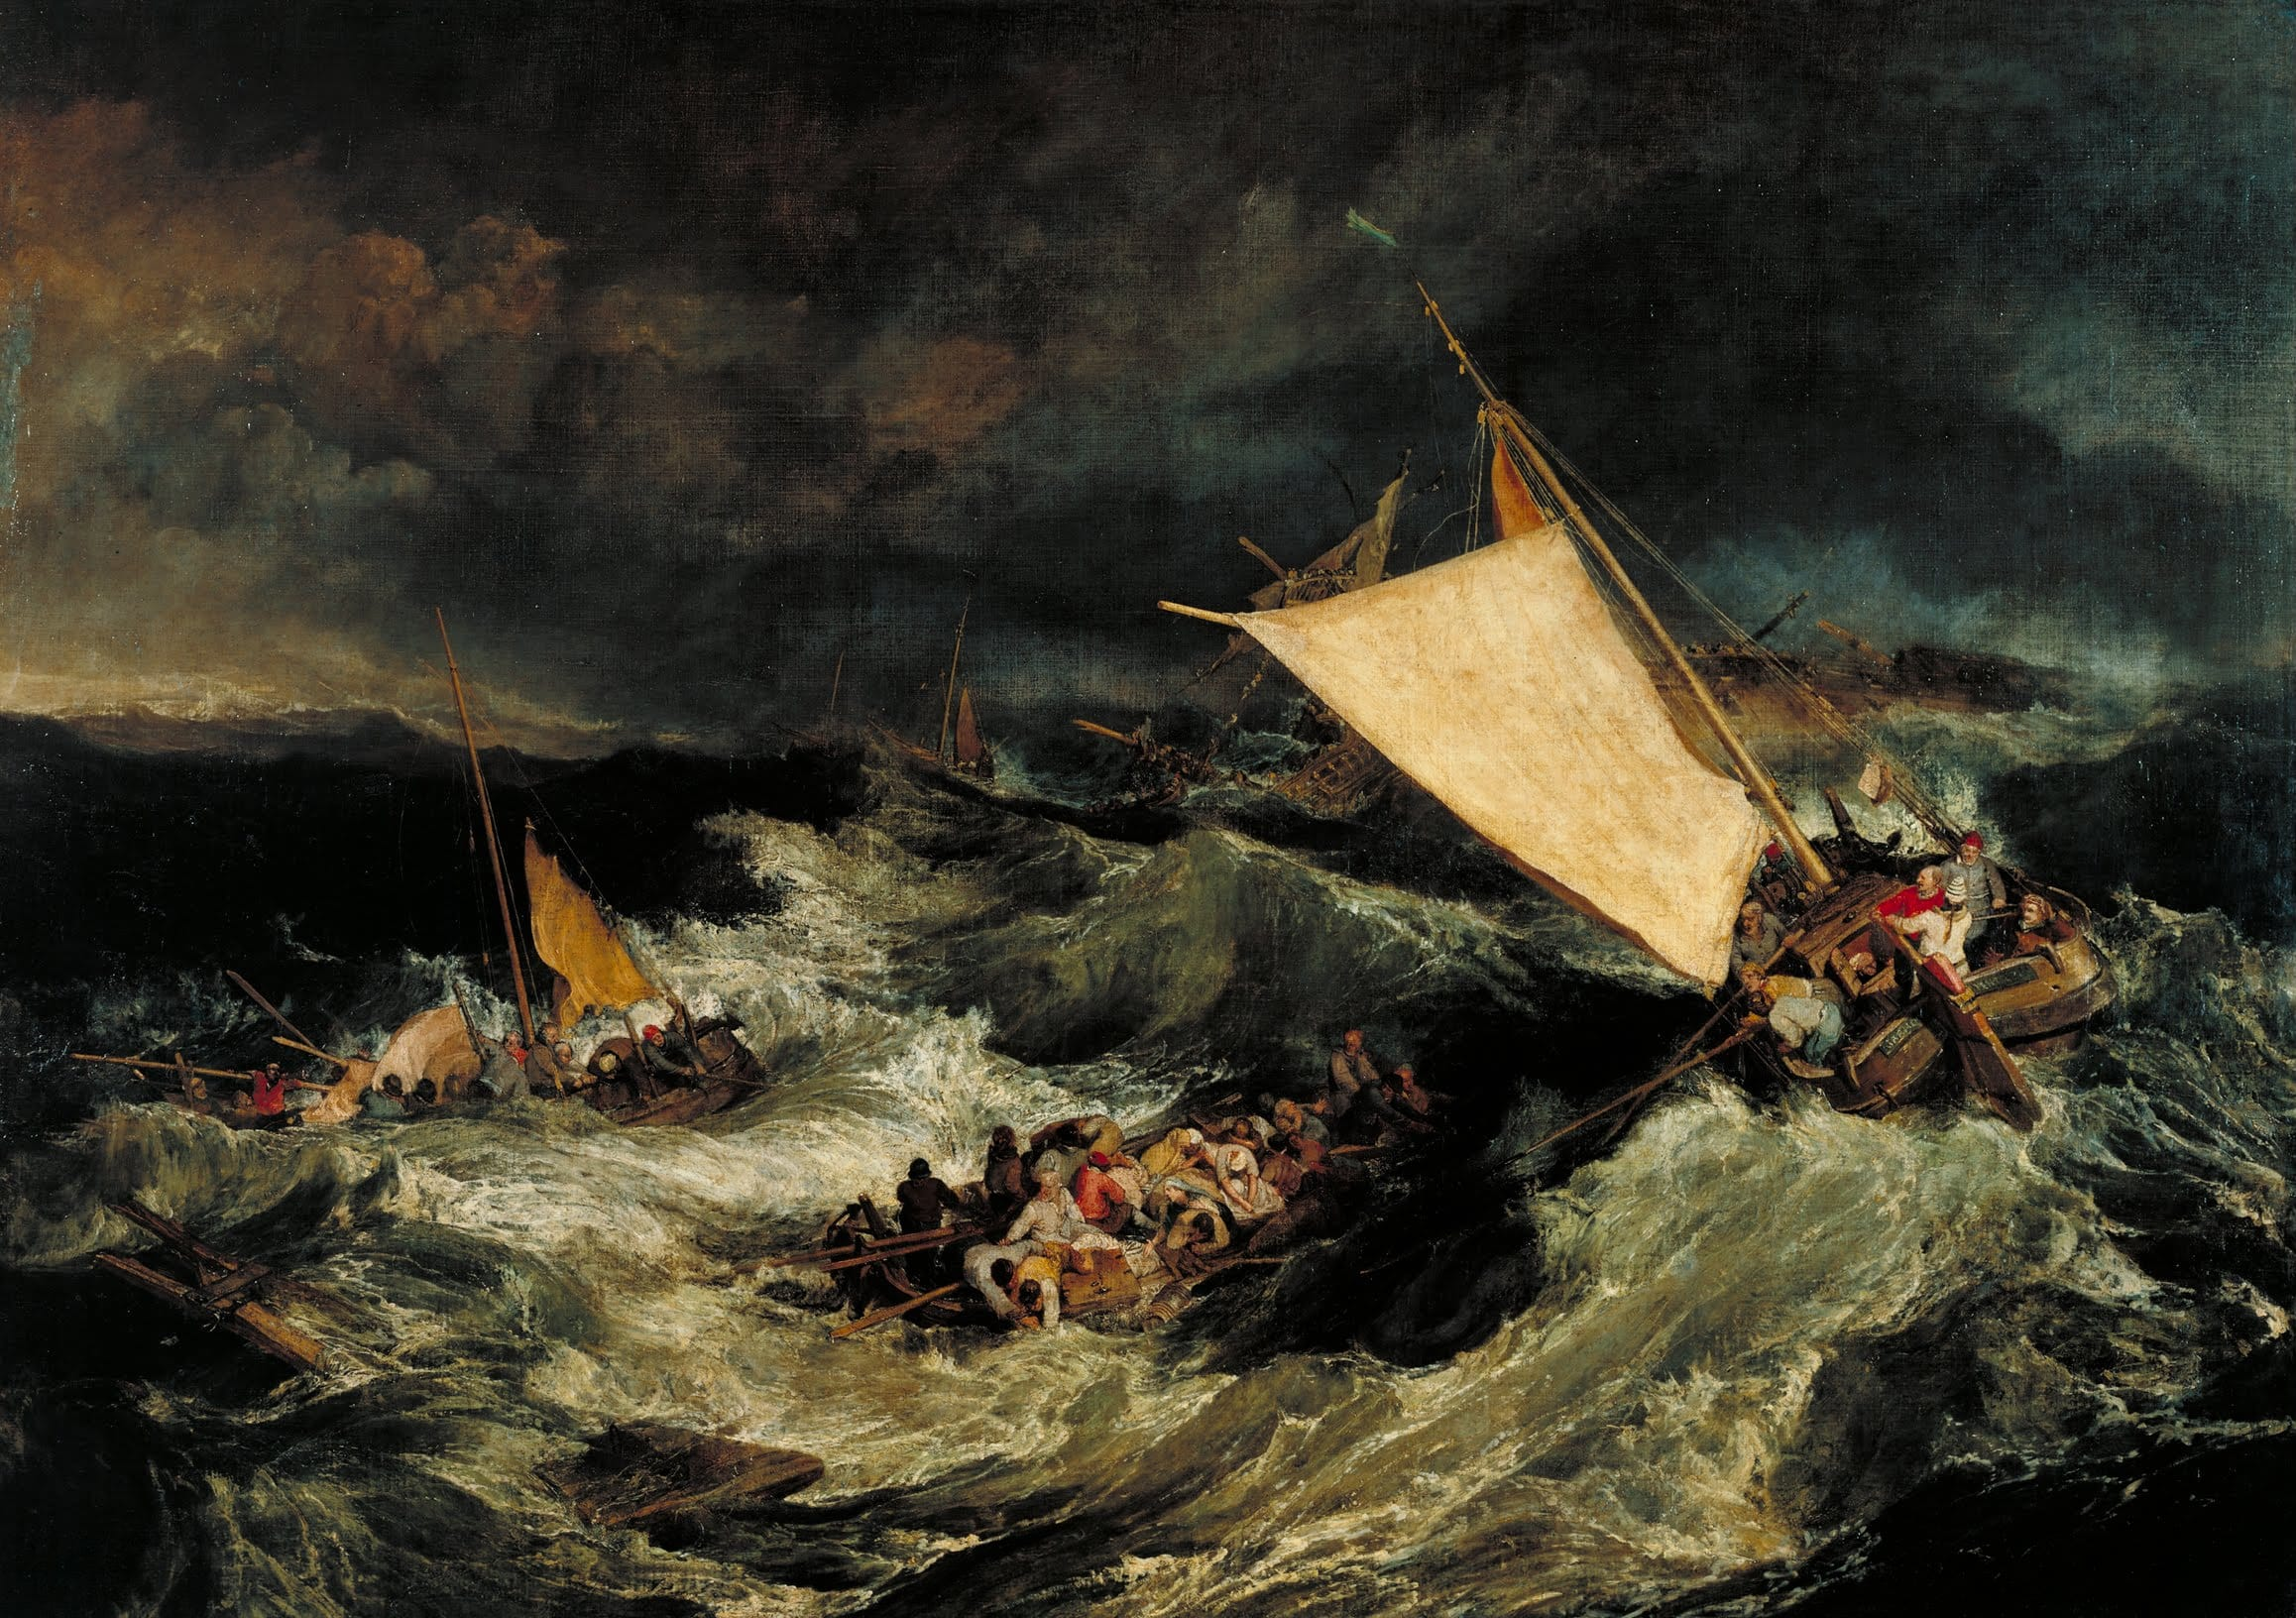 J.M.W. Turner,  The Shipwreck  (1805). Tate Gallery, London